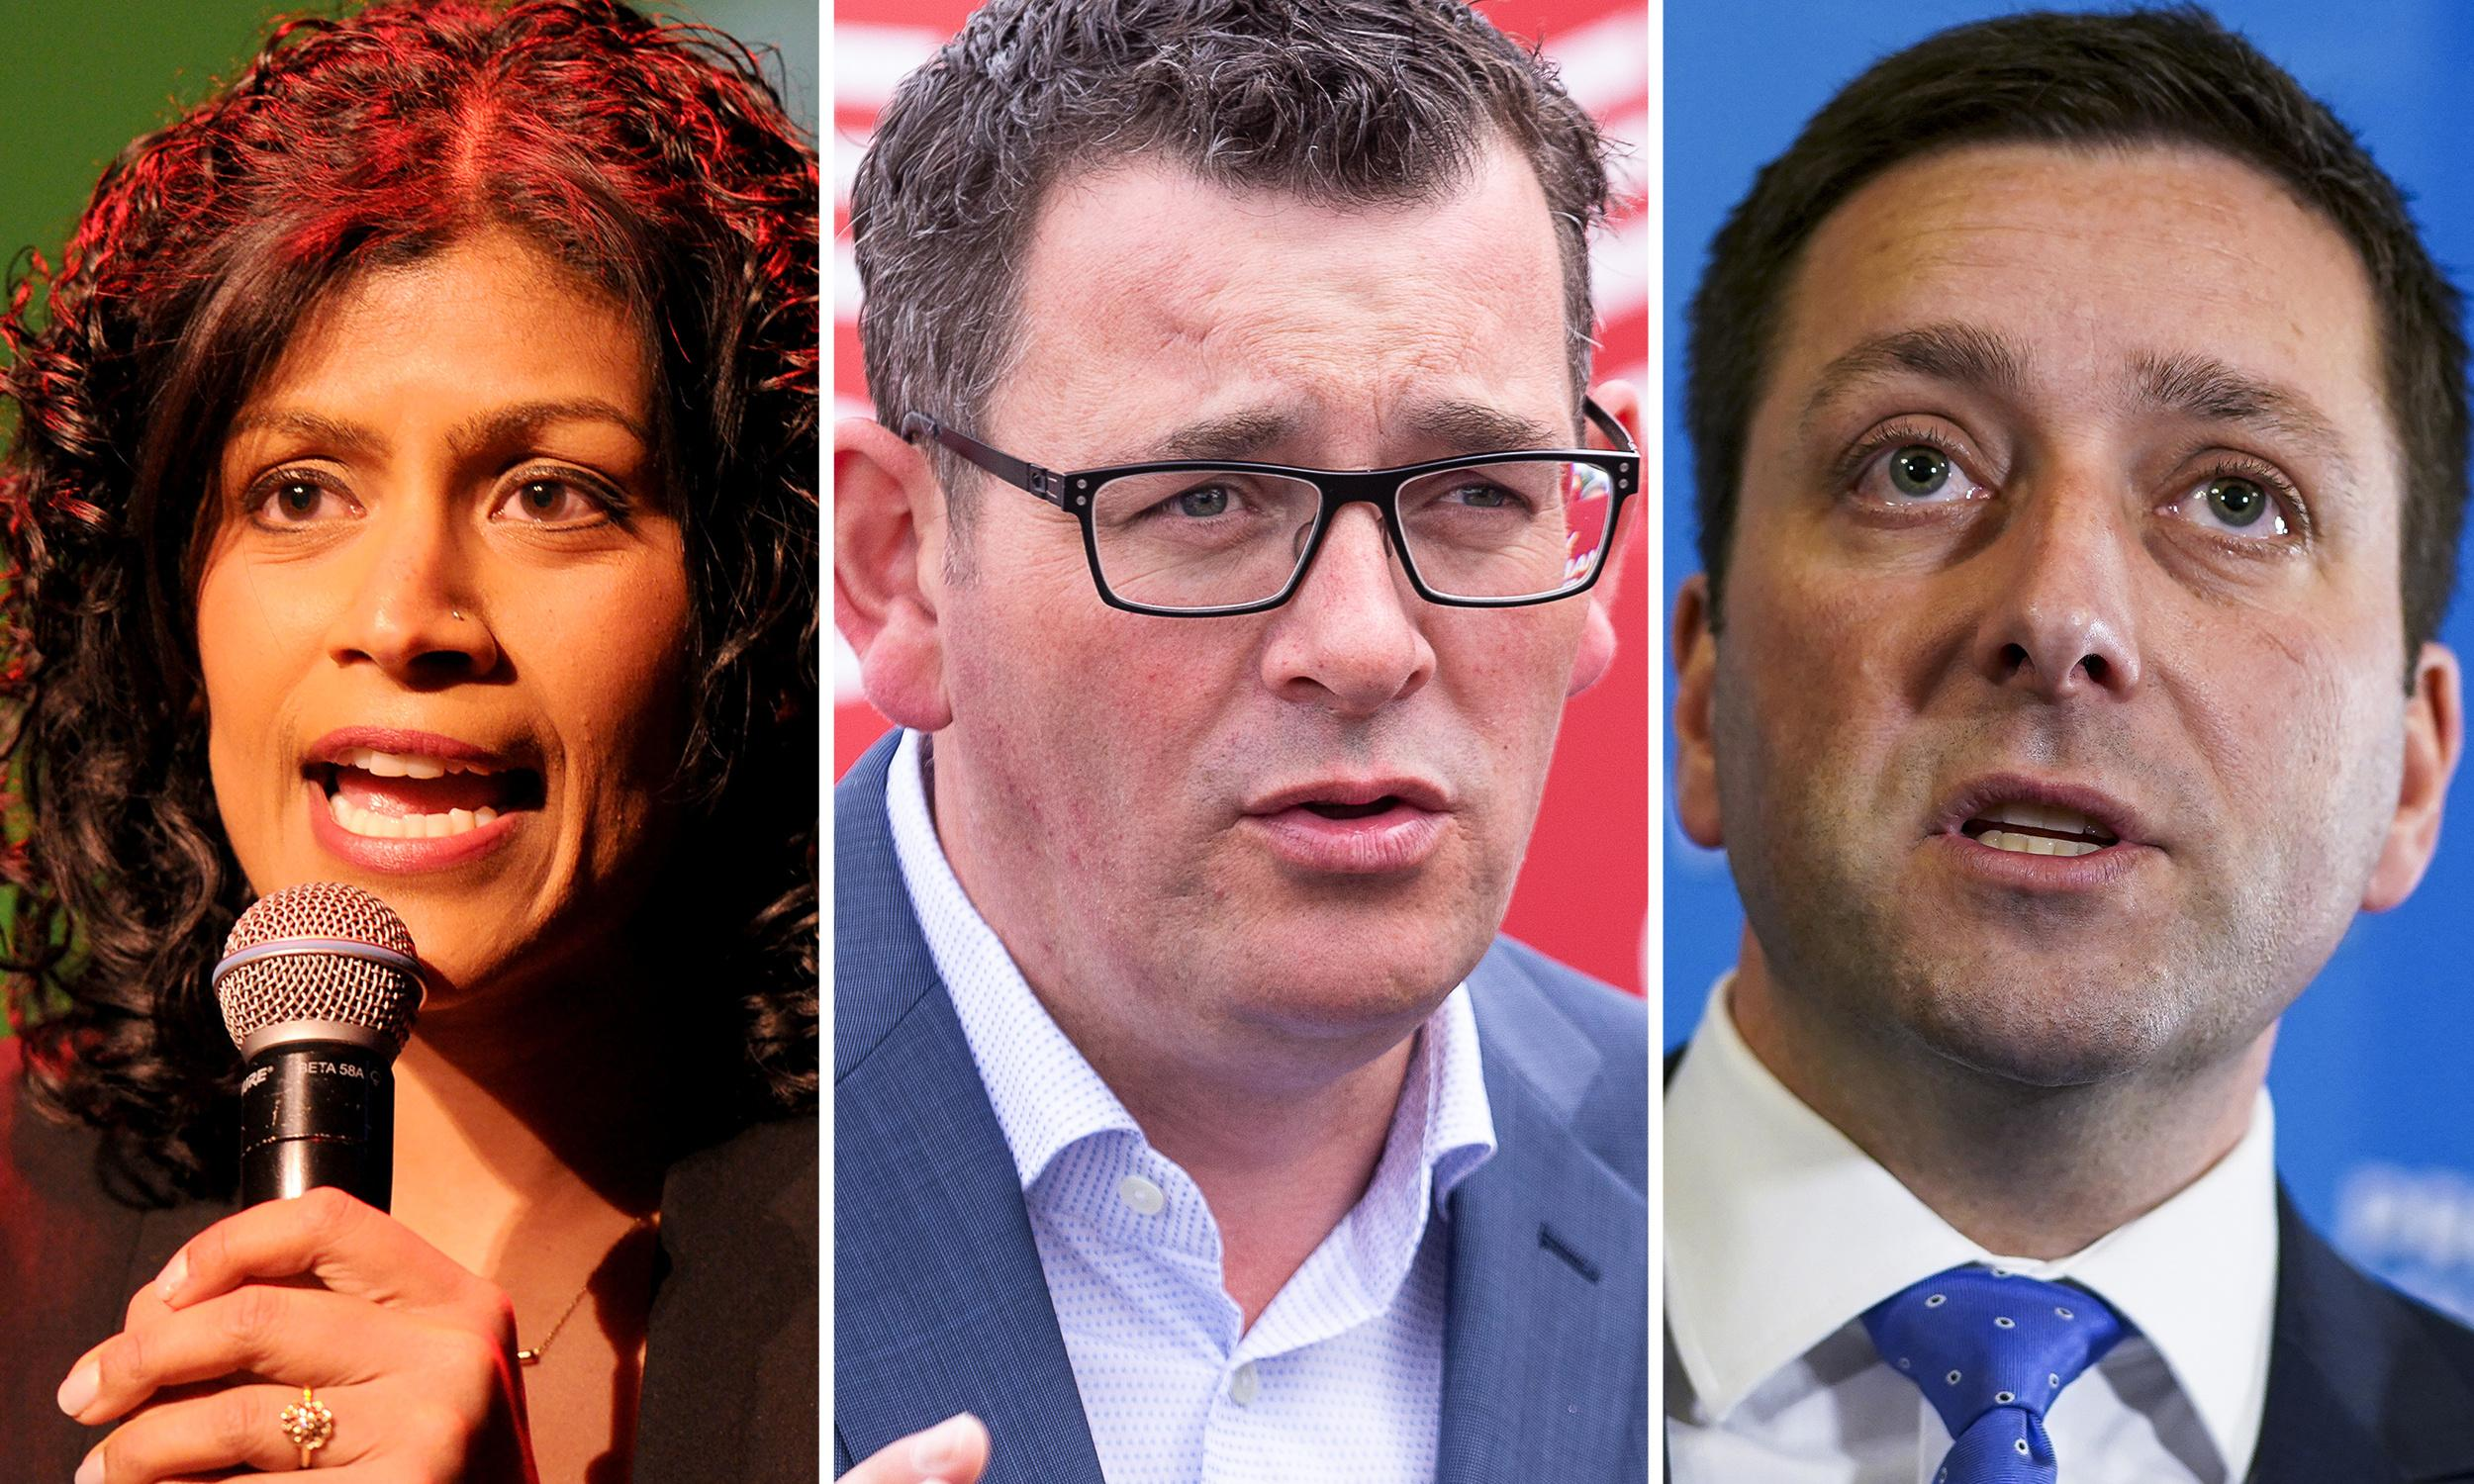 Who should you vote for in the Victorian election?